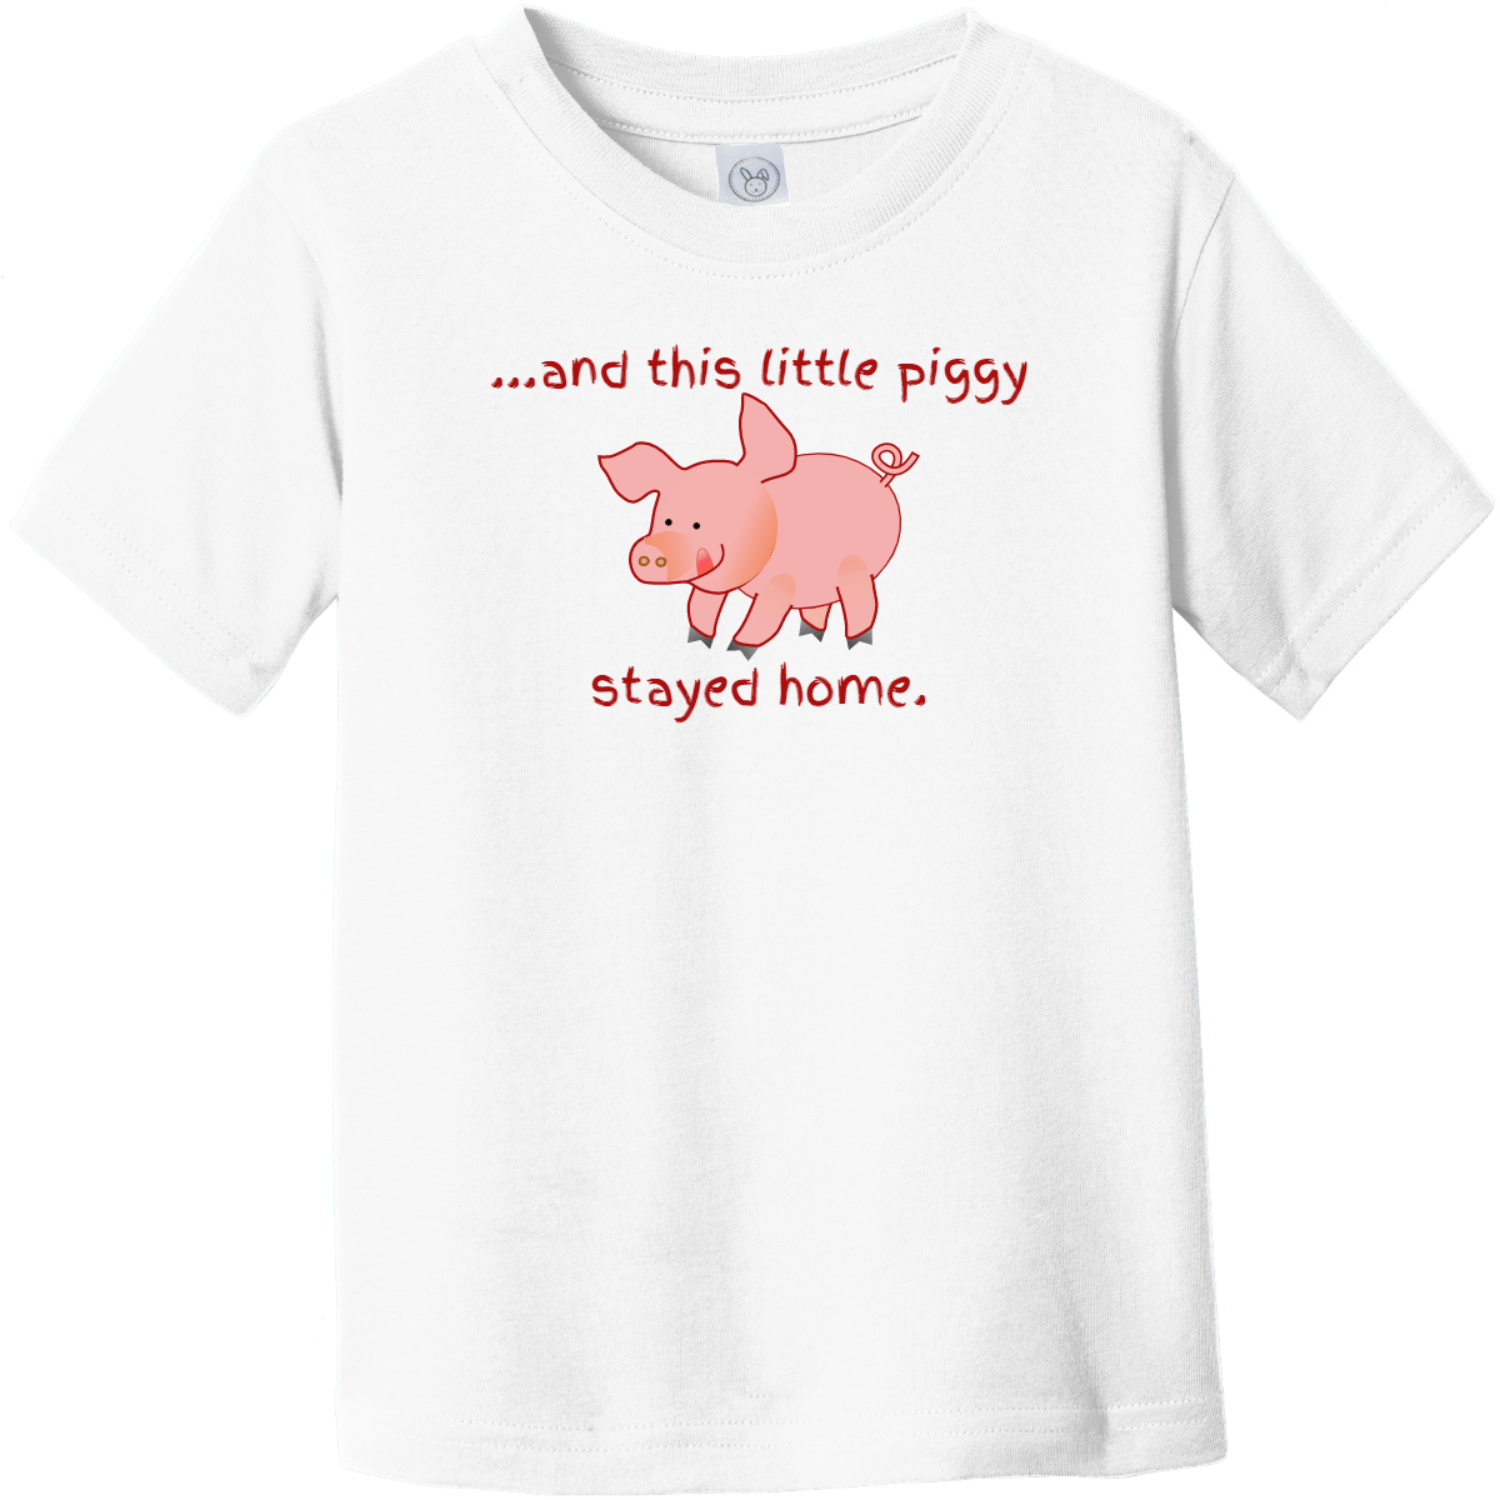 This Little Piggy Stayed Home Toddler T-Shirt White Rabbit Skins Toddler Fine Jersey Tee RS3321